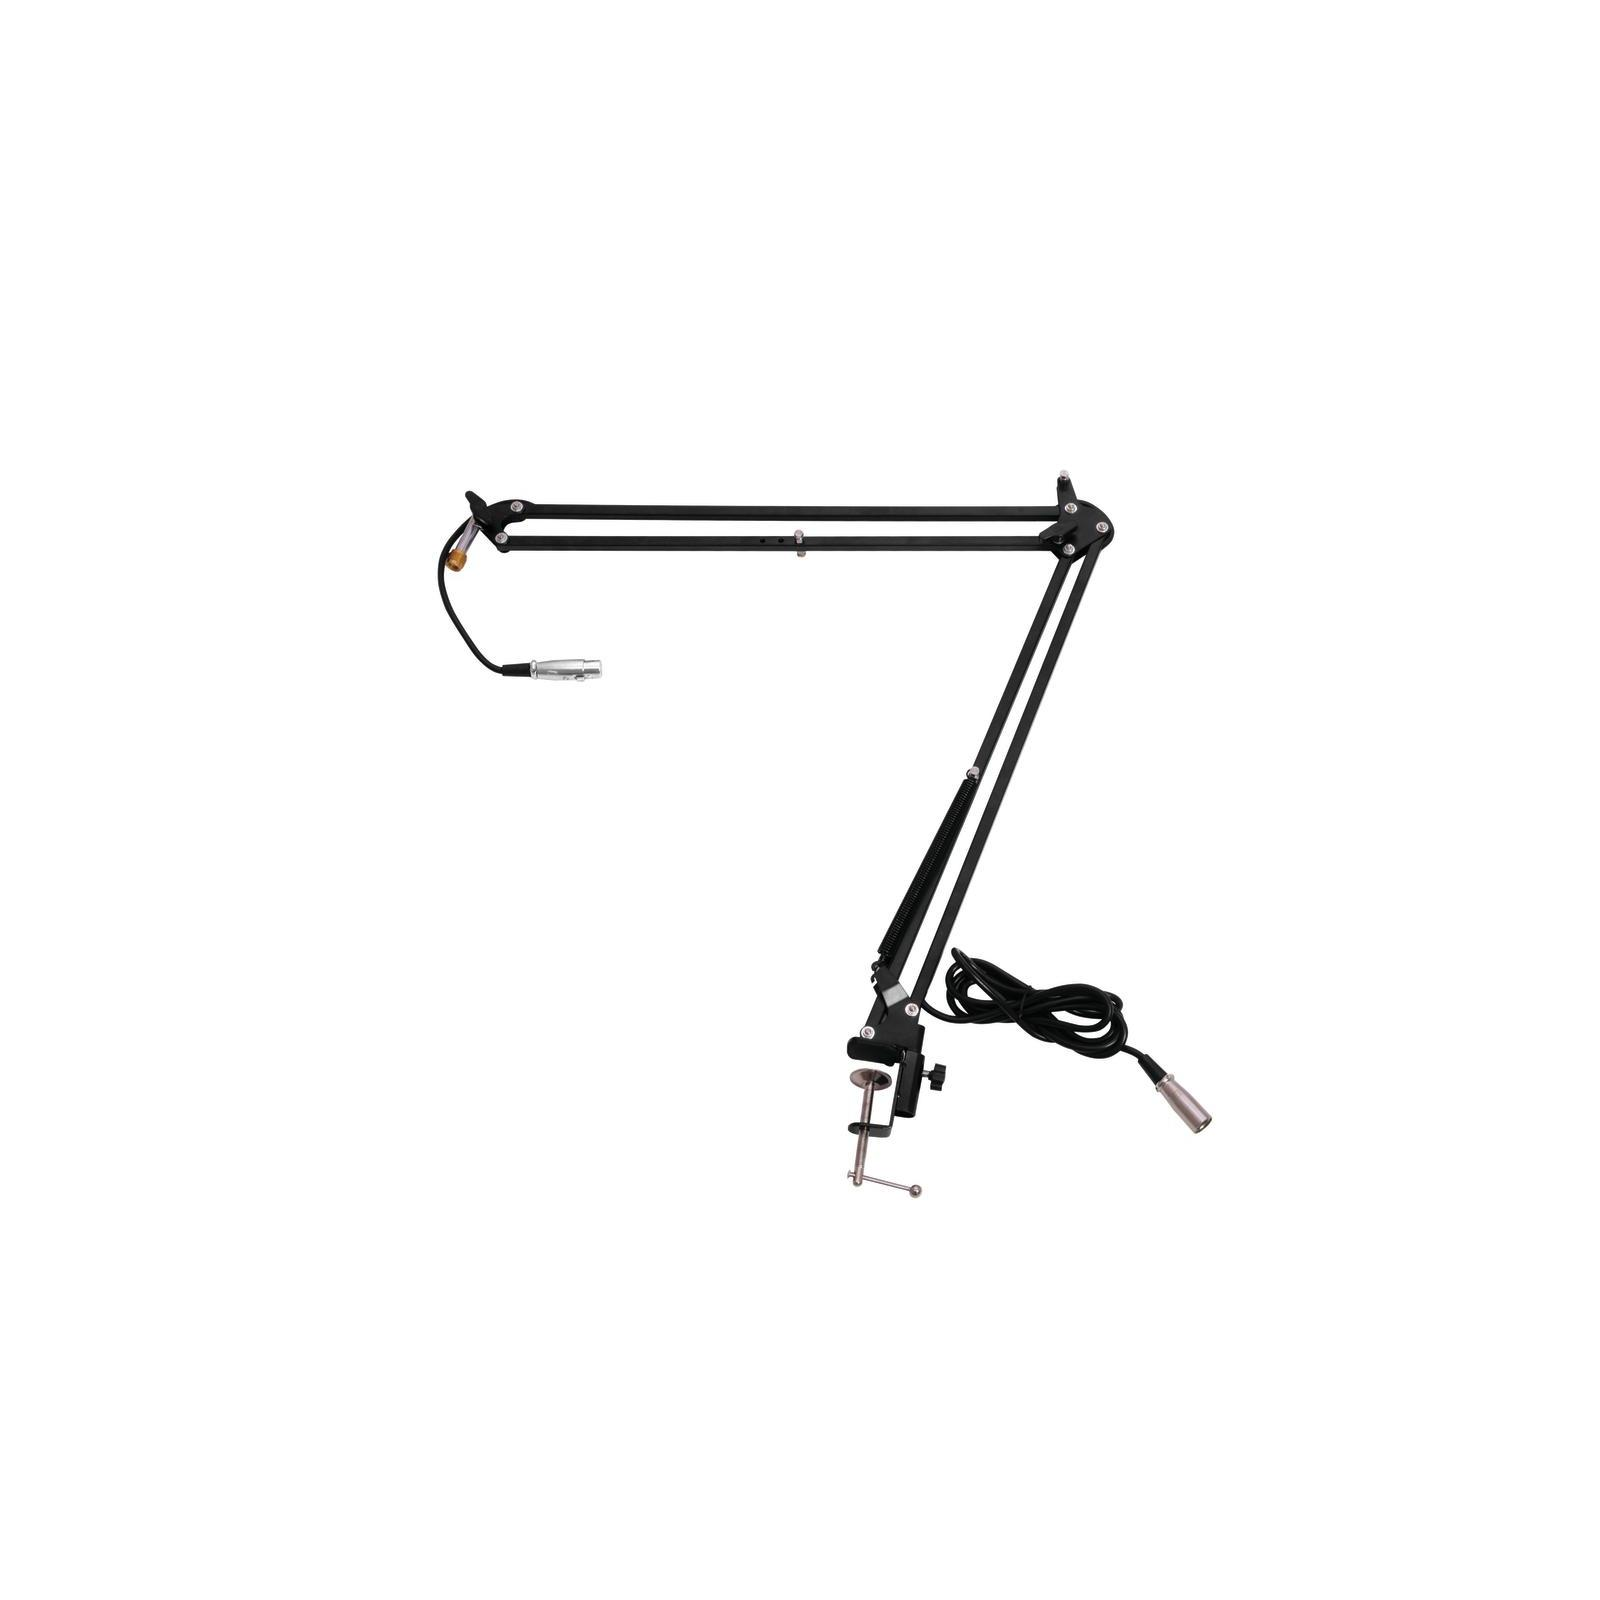 Omnitronic Table Microphone Arm Tma 1n Su Mondospettacoli